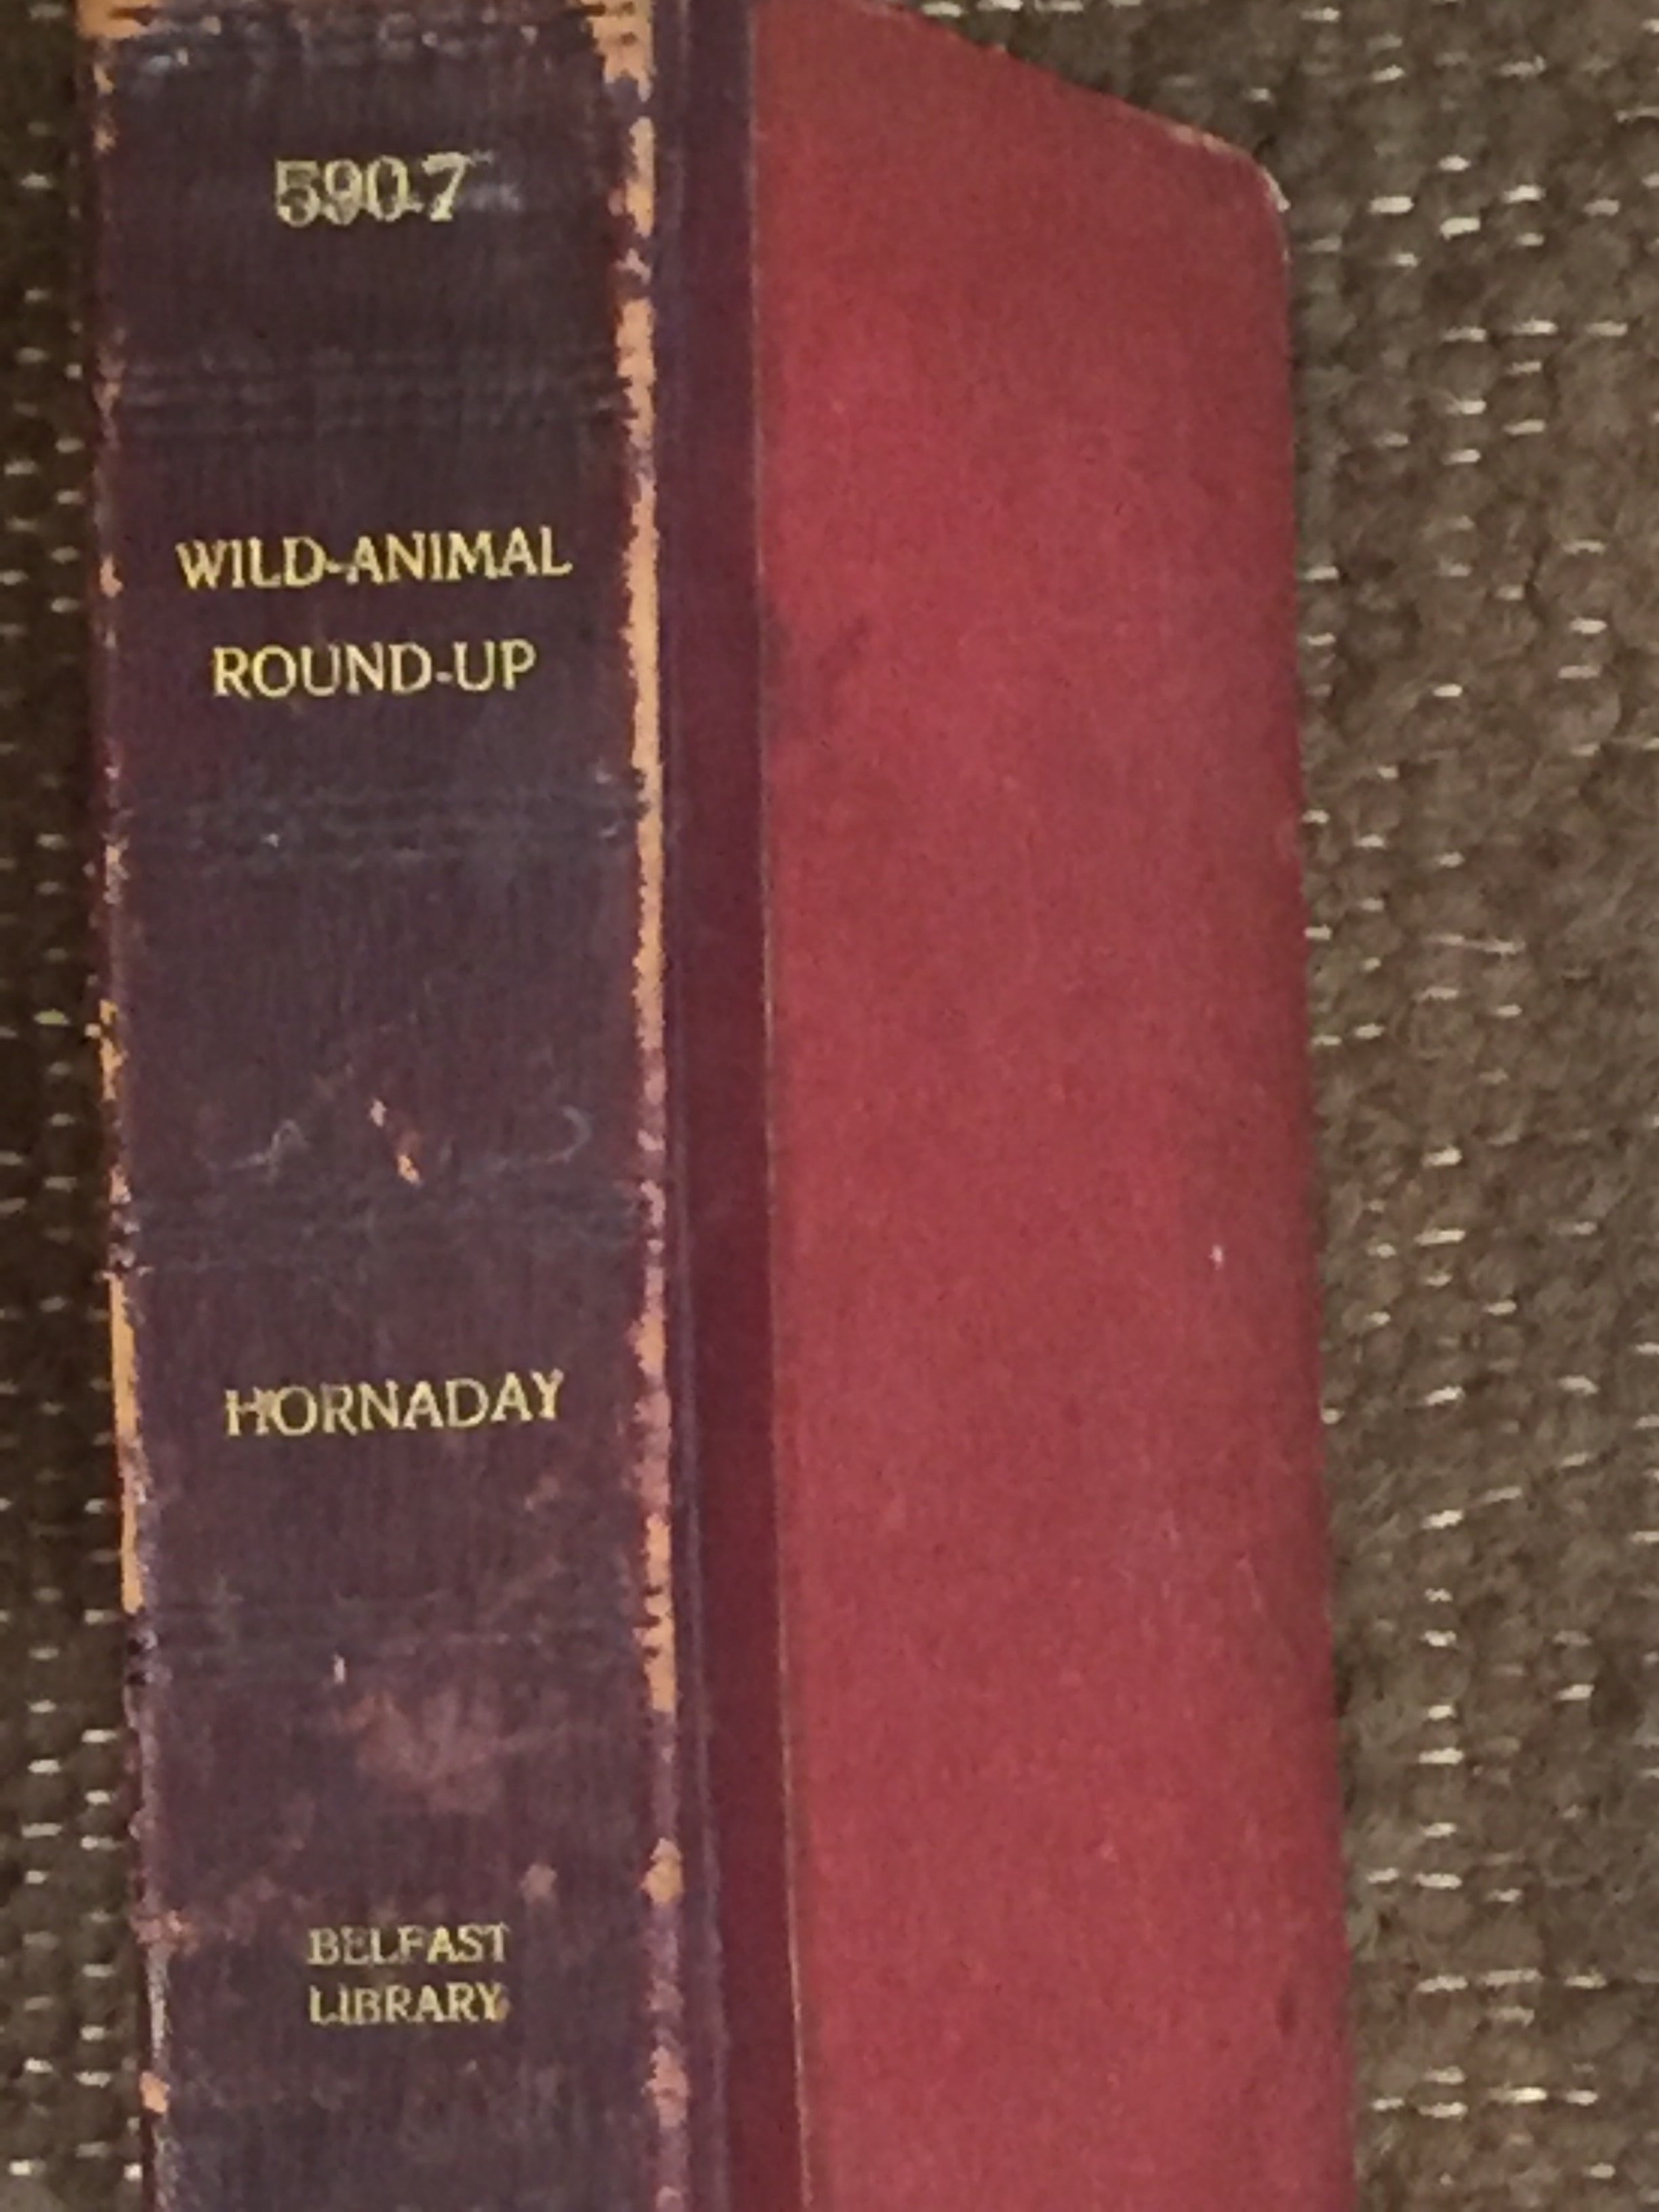 BOOKS - A Wild Animal Roundup by Hornaday